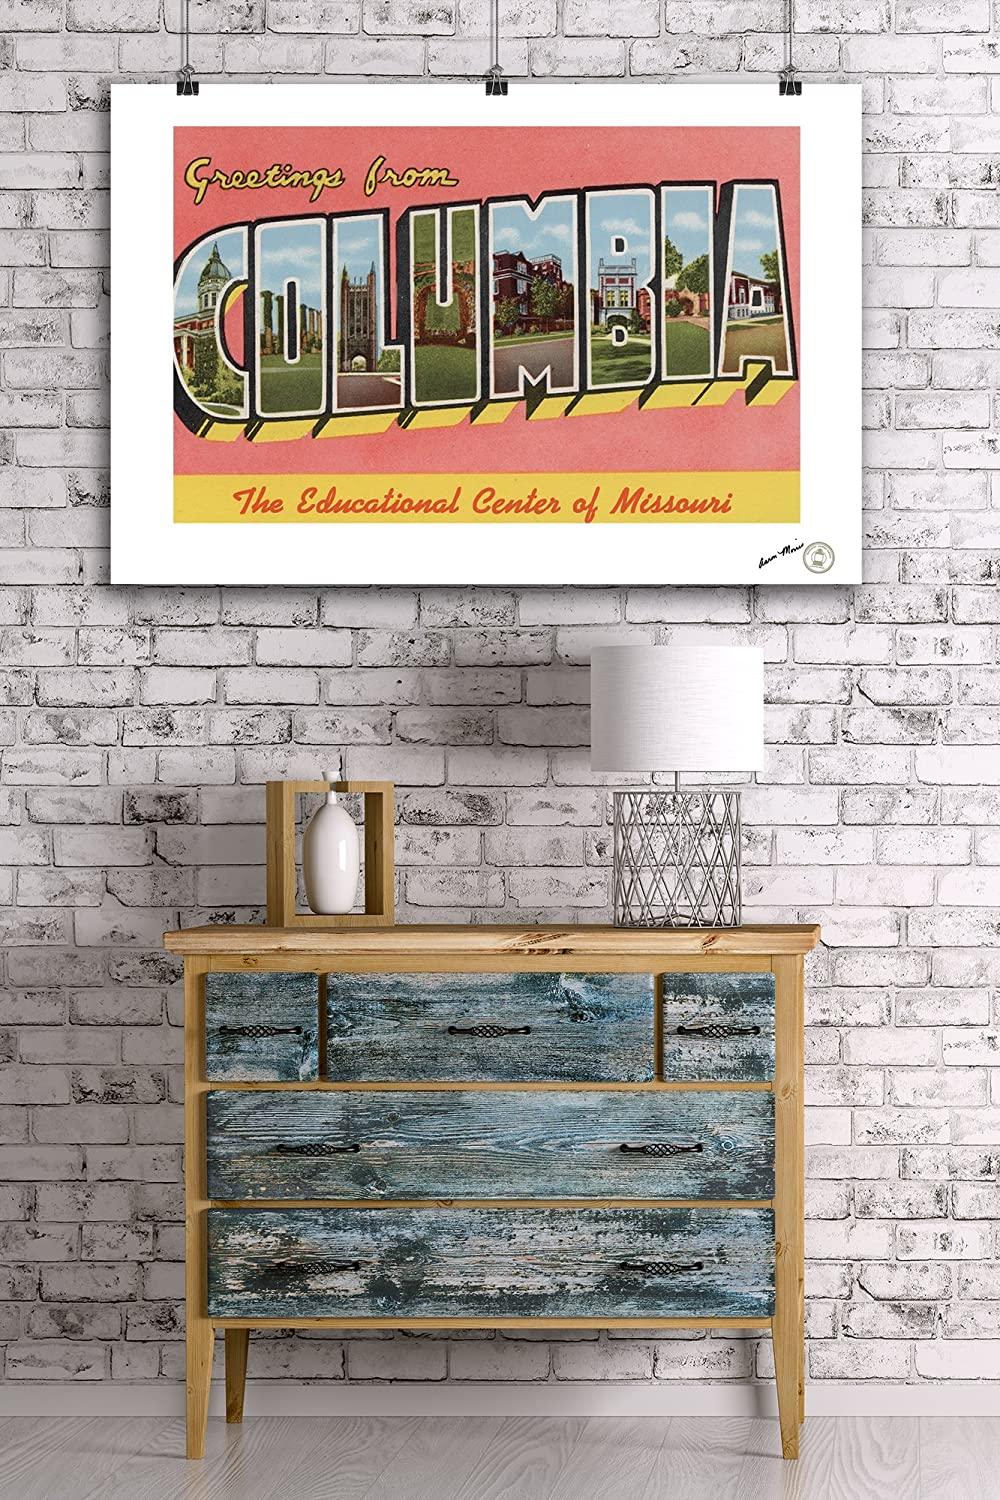 Columbia Large Letter Scenes Missouri 36x54 Giclee Gallery Print, Wall Decor Travel Poster